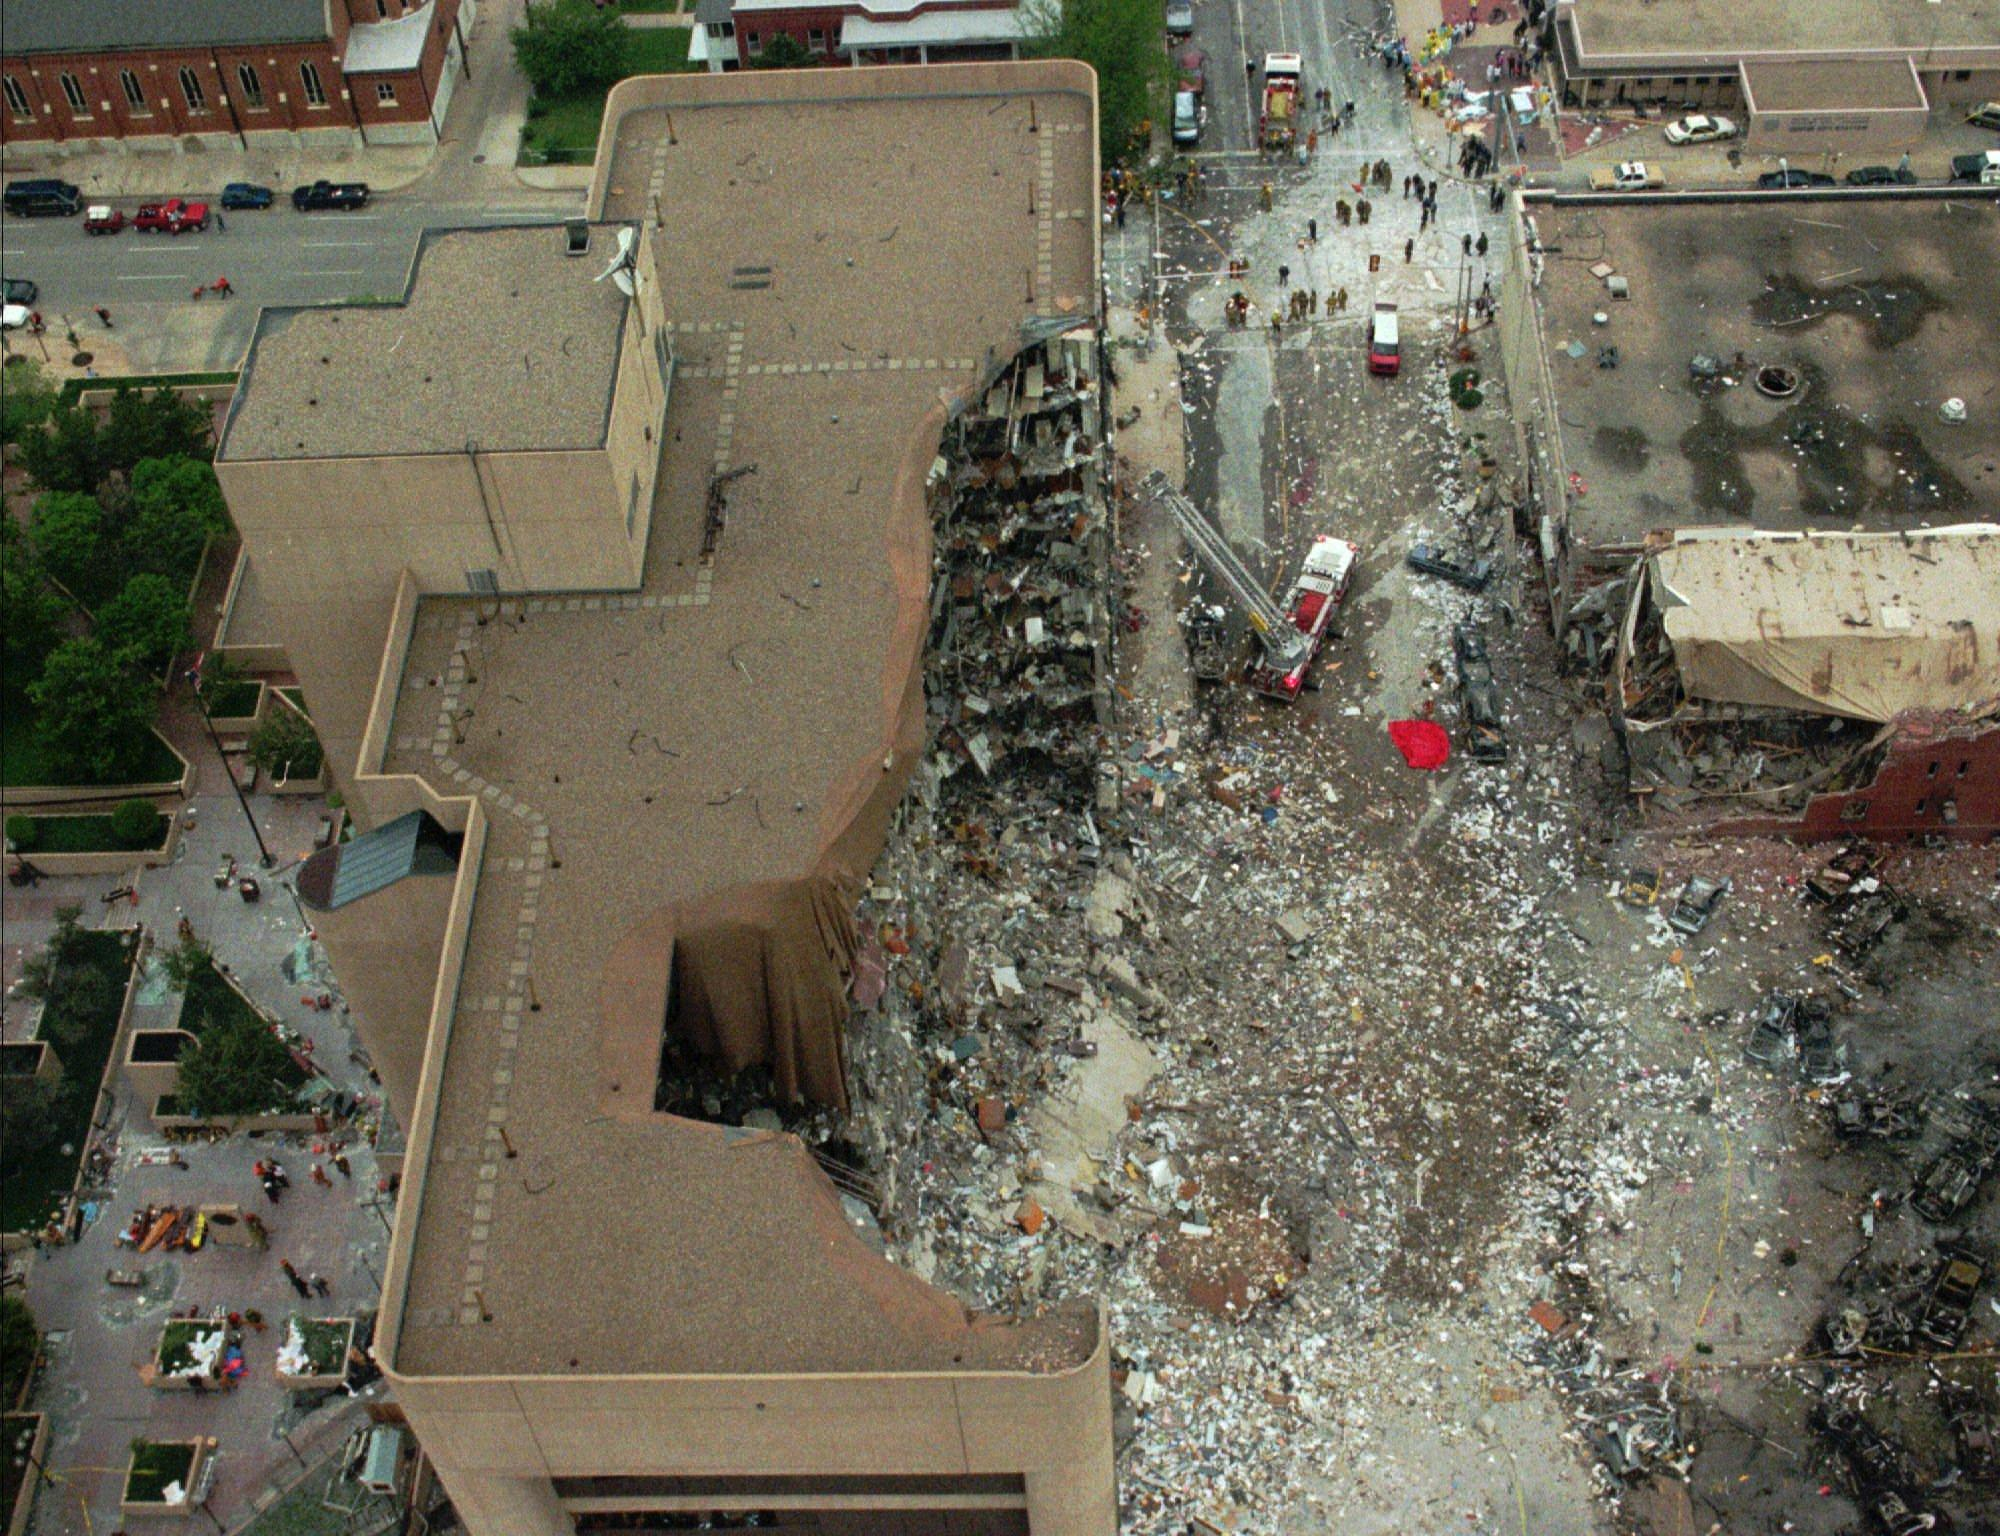 the oklahoma city bombing The oklahoma city medical examiner has partial dna from an unmatched left leg collected from the ruins of the alfred p murrah federal building bombing, reviving the possibility of a 169th unidentified victim from the 1995 terror attack as well as defense lawyers' long-held belief.